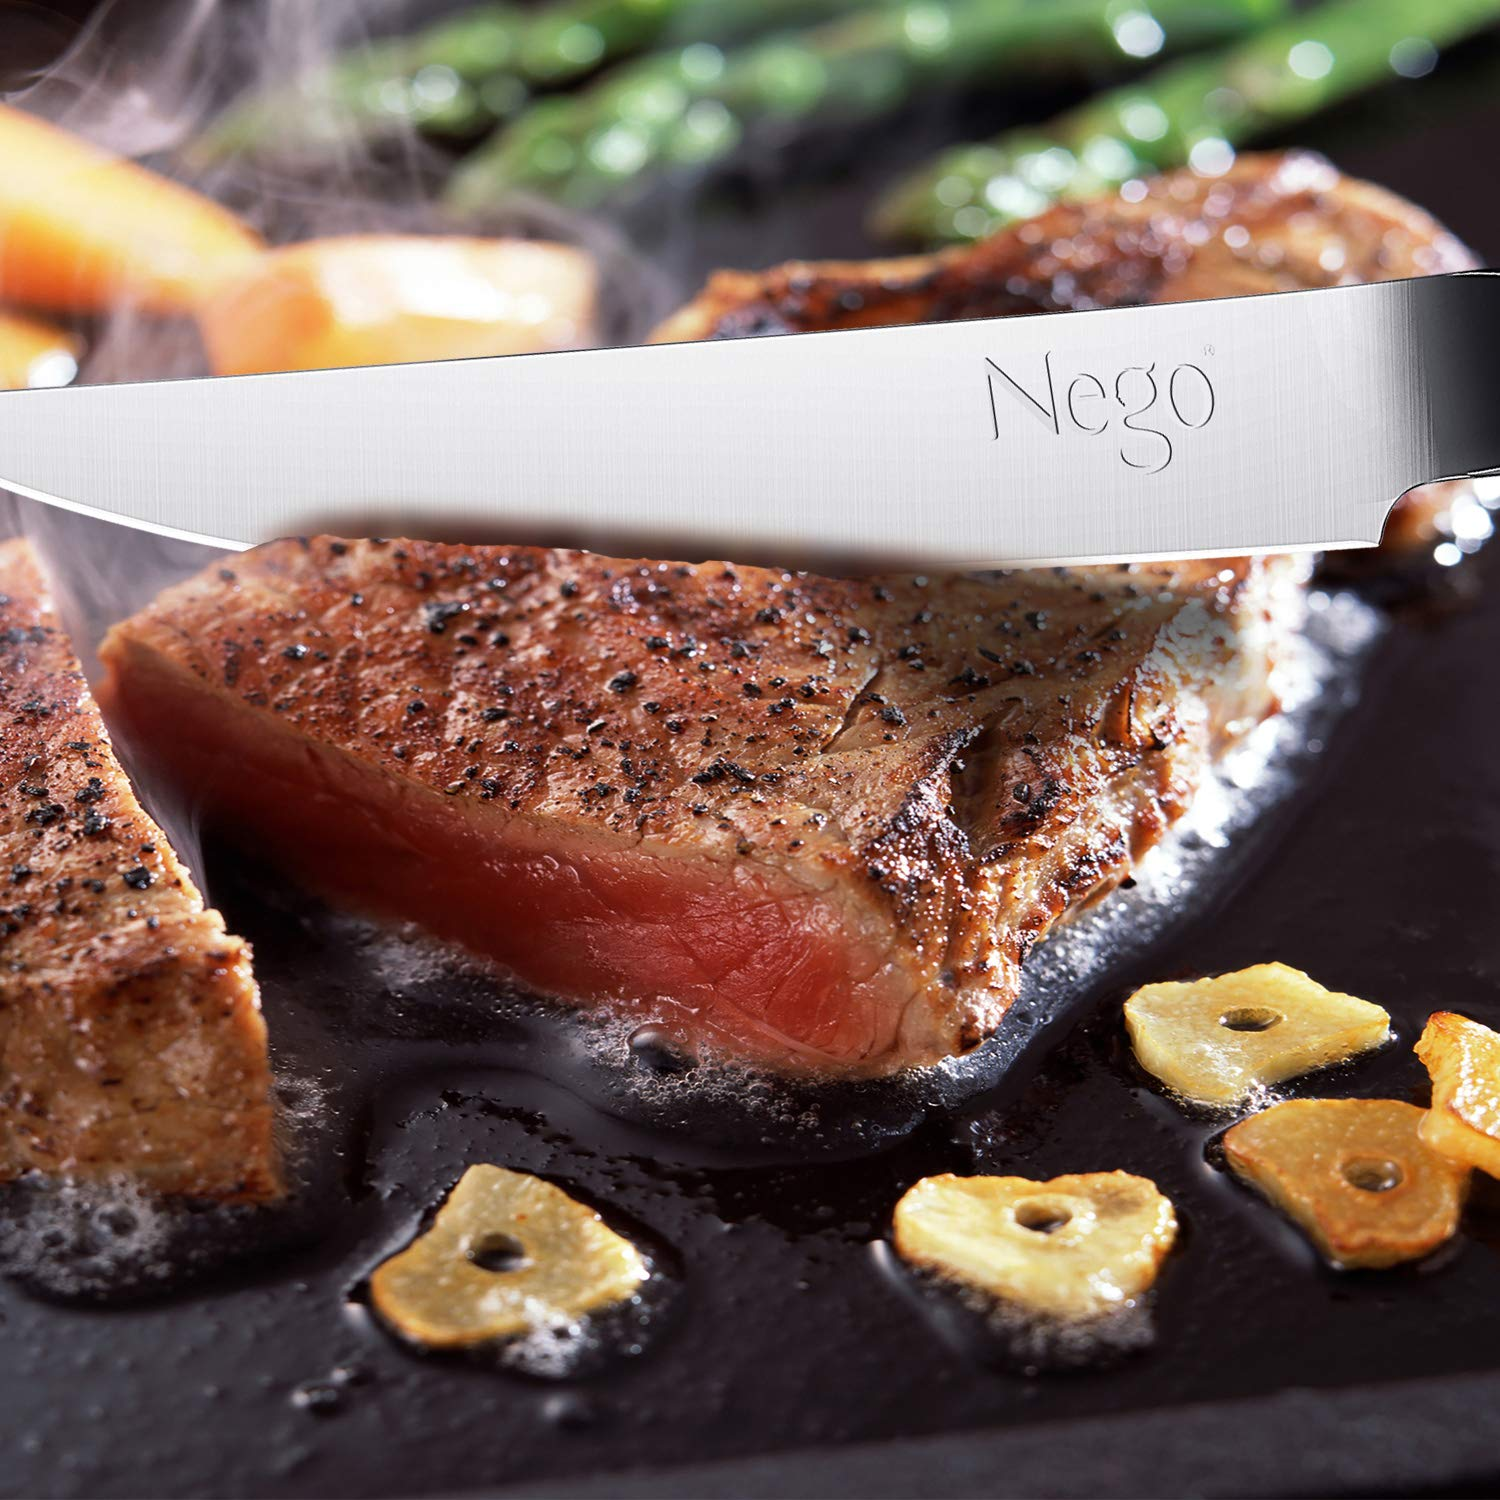 Steak Knives - 6Piece Steak Knife Set, 4.5 Inch Edge Blade Pointed Tip Table Knife German HC Stainless Steel Razor Sharpness Rust Protection Lightweight Neatly Slicing Classic Kitchen Cutlery by Nego (Image #3)